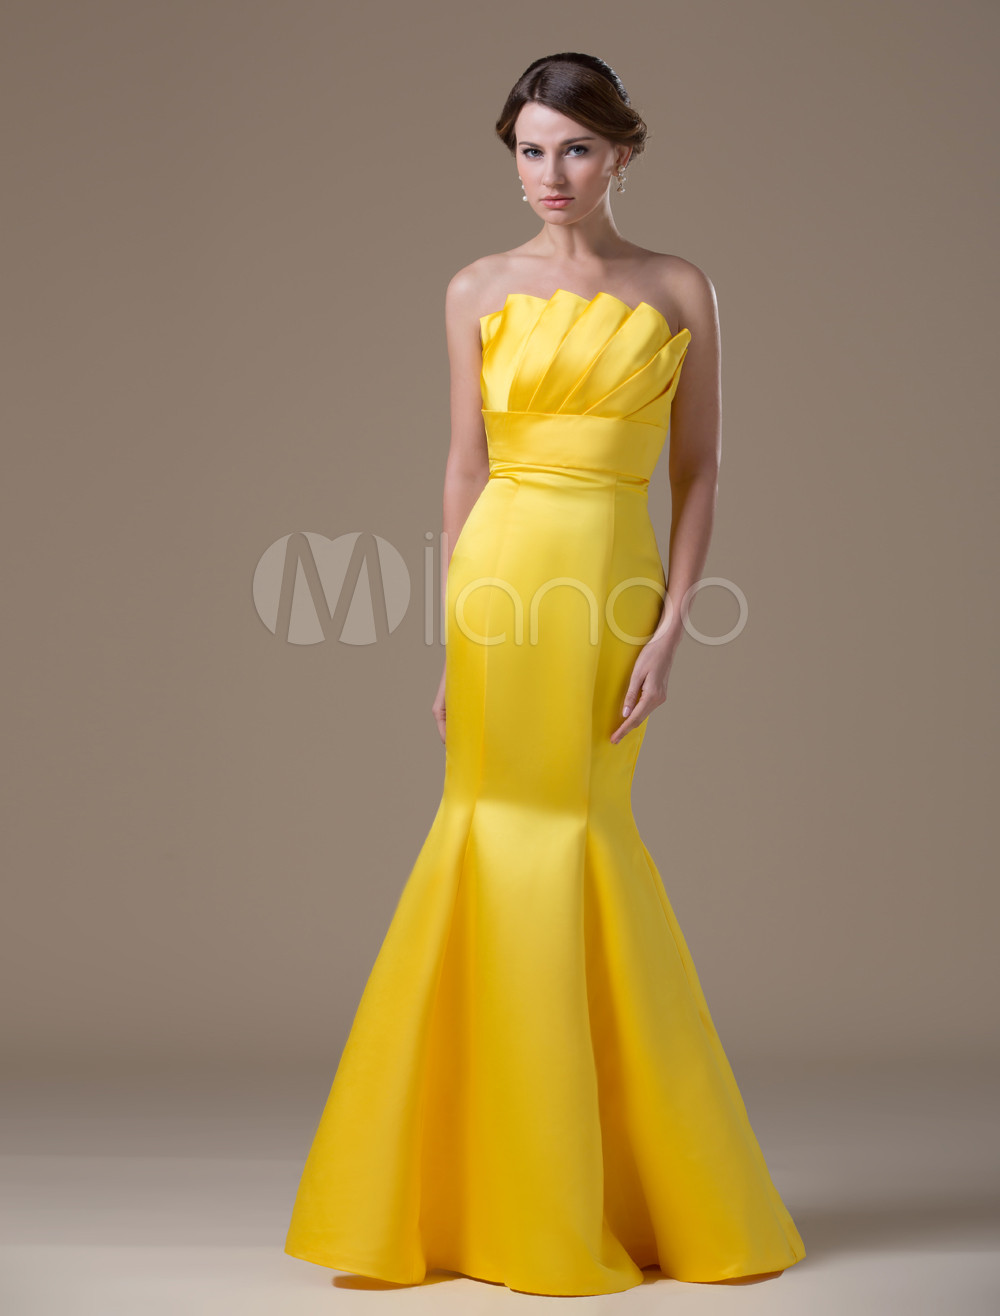 Unique Golden Satin Mermaid Strapless Evening Dress